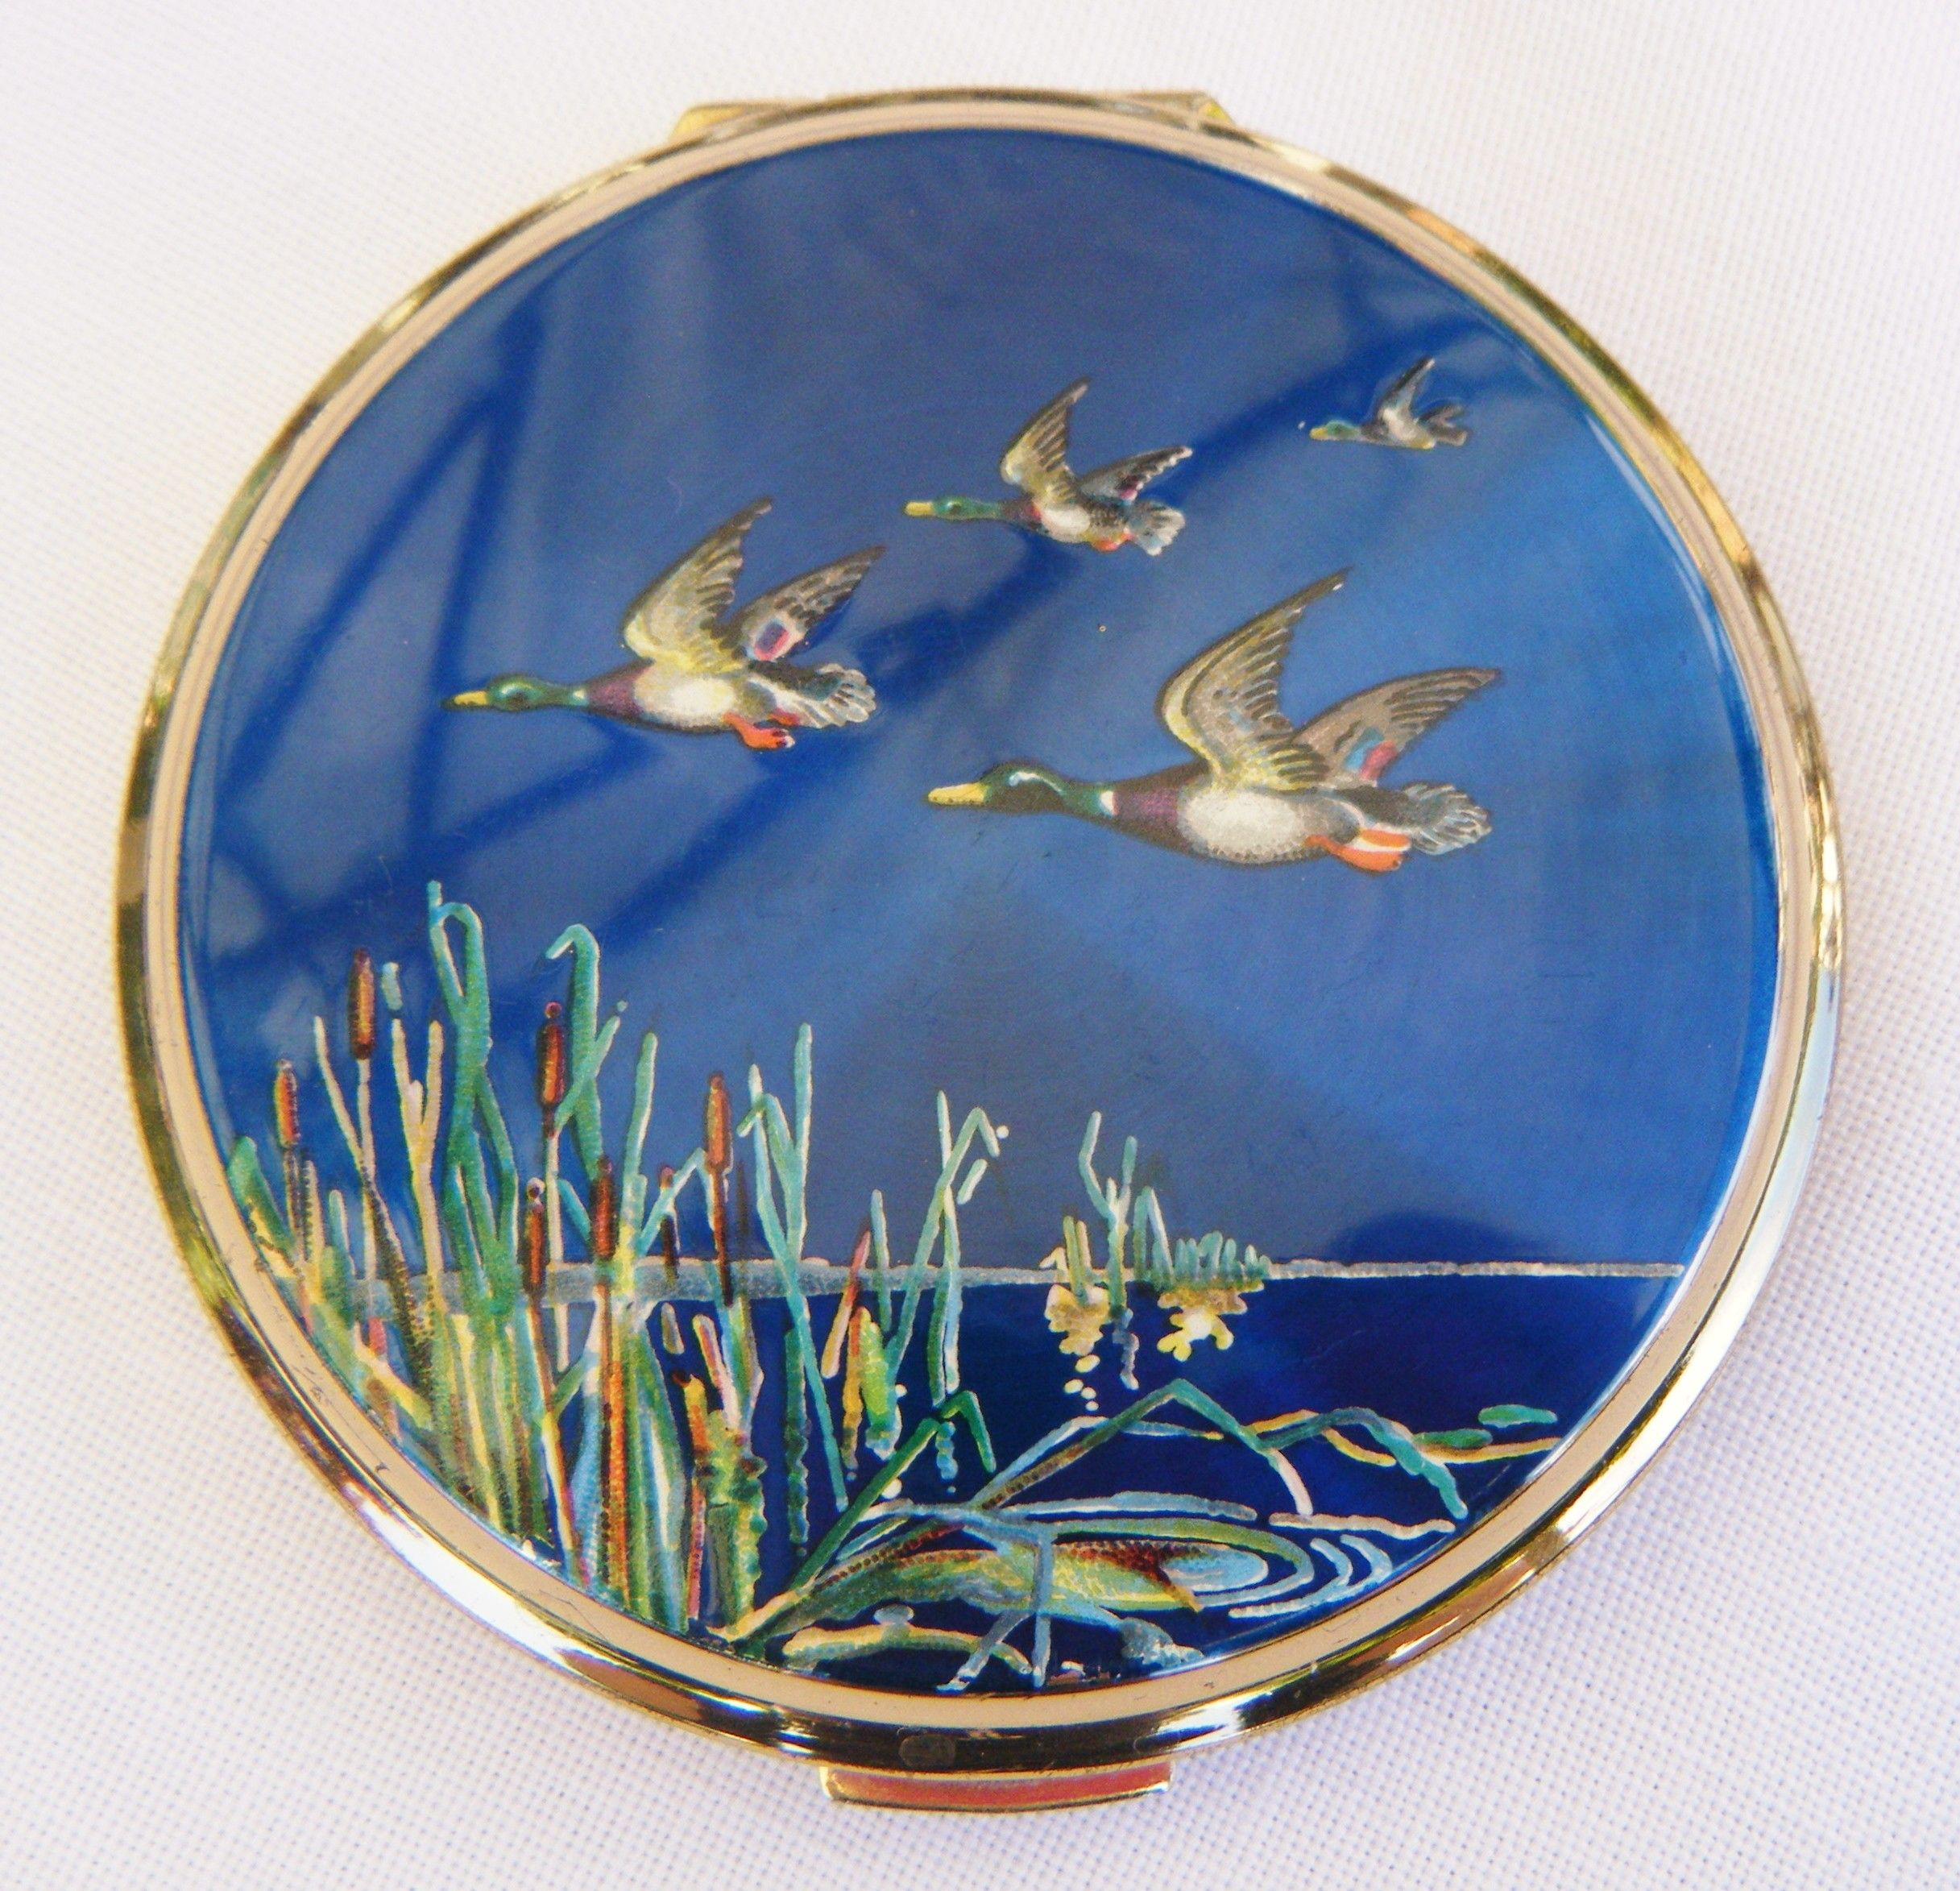 Pin by Karin Reid on Wonderful Compacts Stratton compact